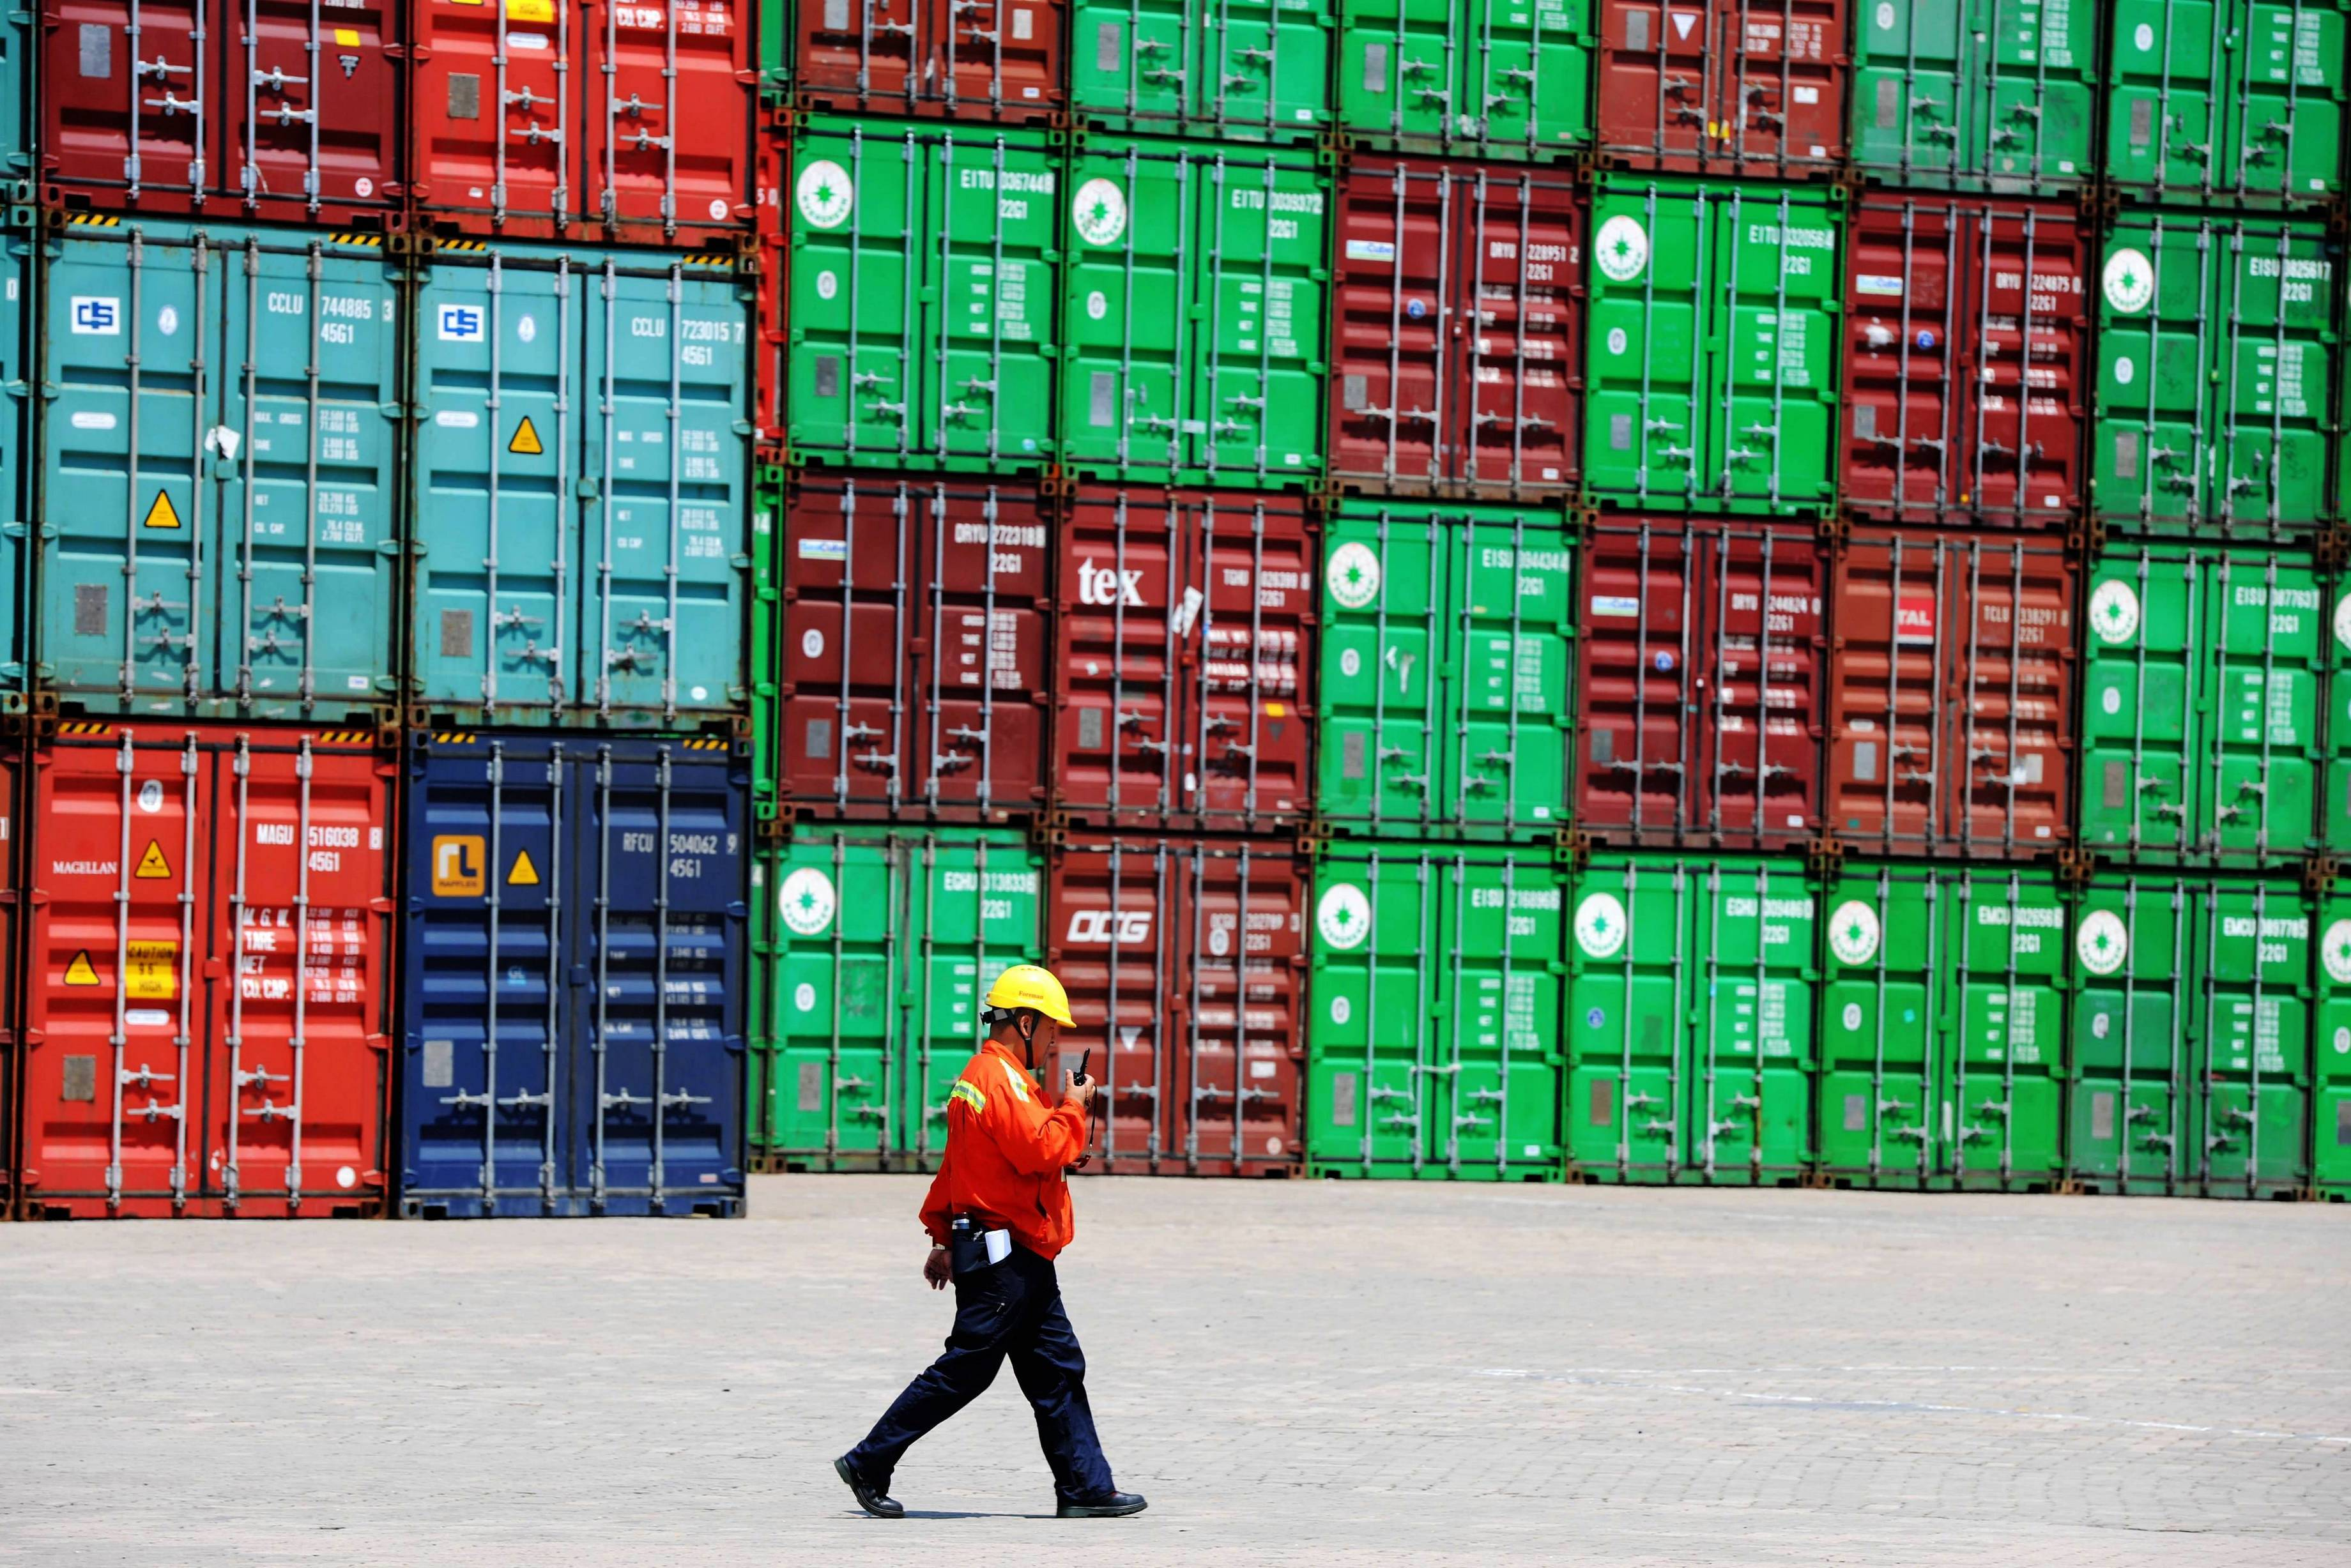 China Total Value Of Foreign Trade Decreased By 6.9% To 11.53 Trillion RMB For First Six Months